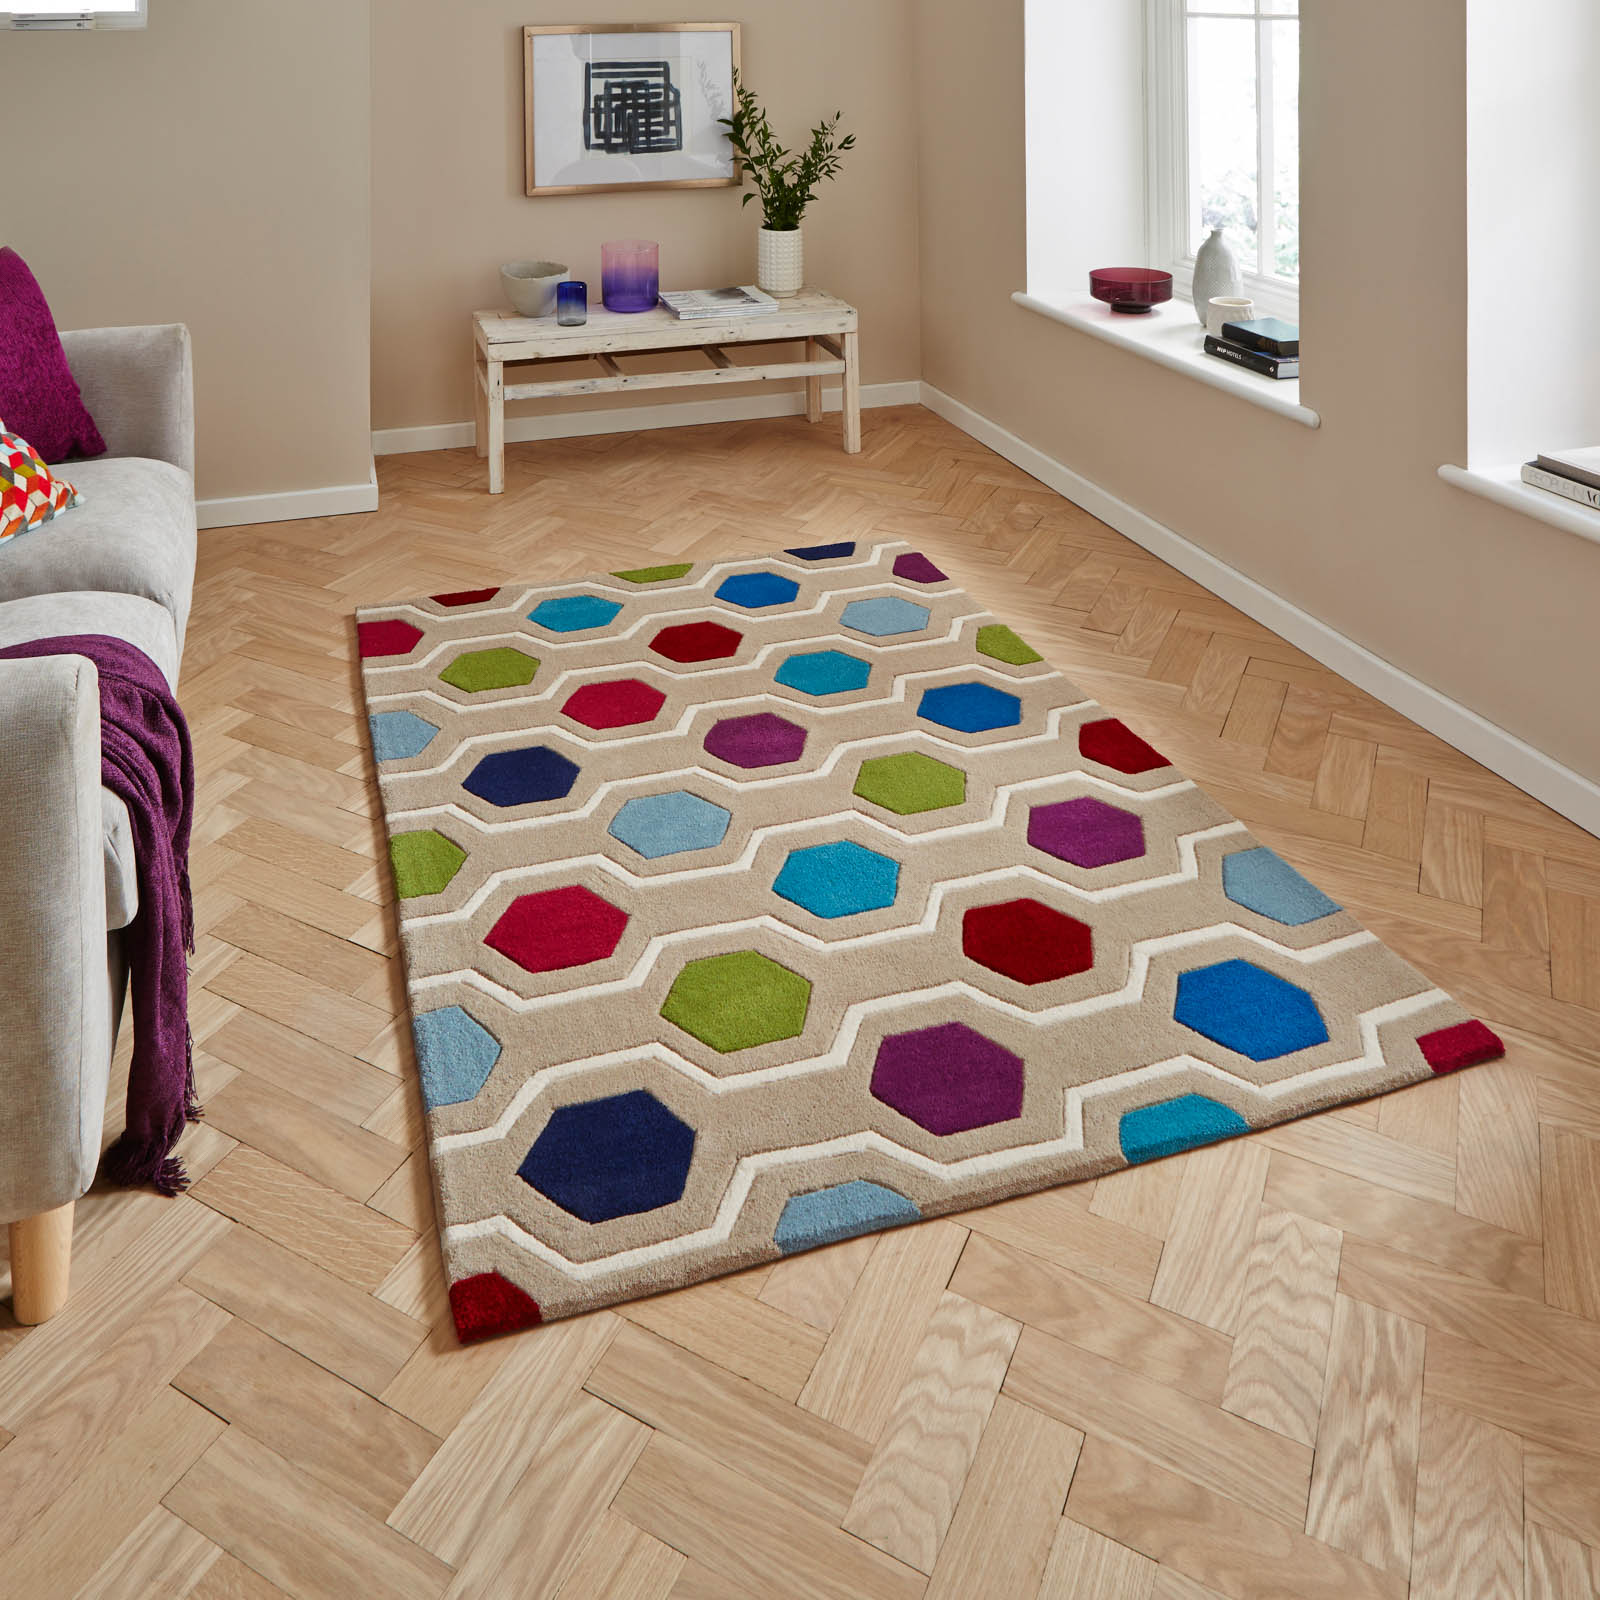 Hong Kong HK6896 Multicoloured Rugs